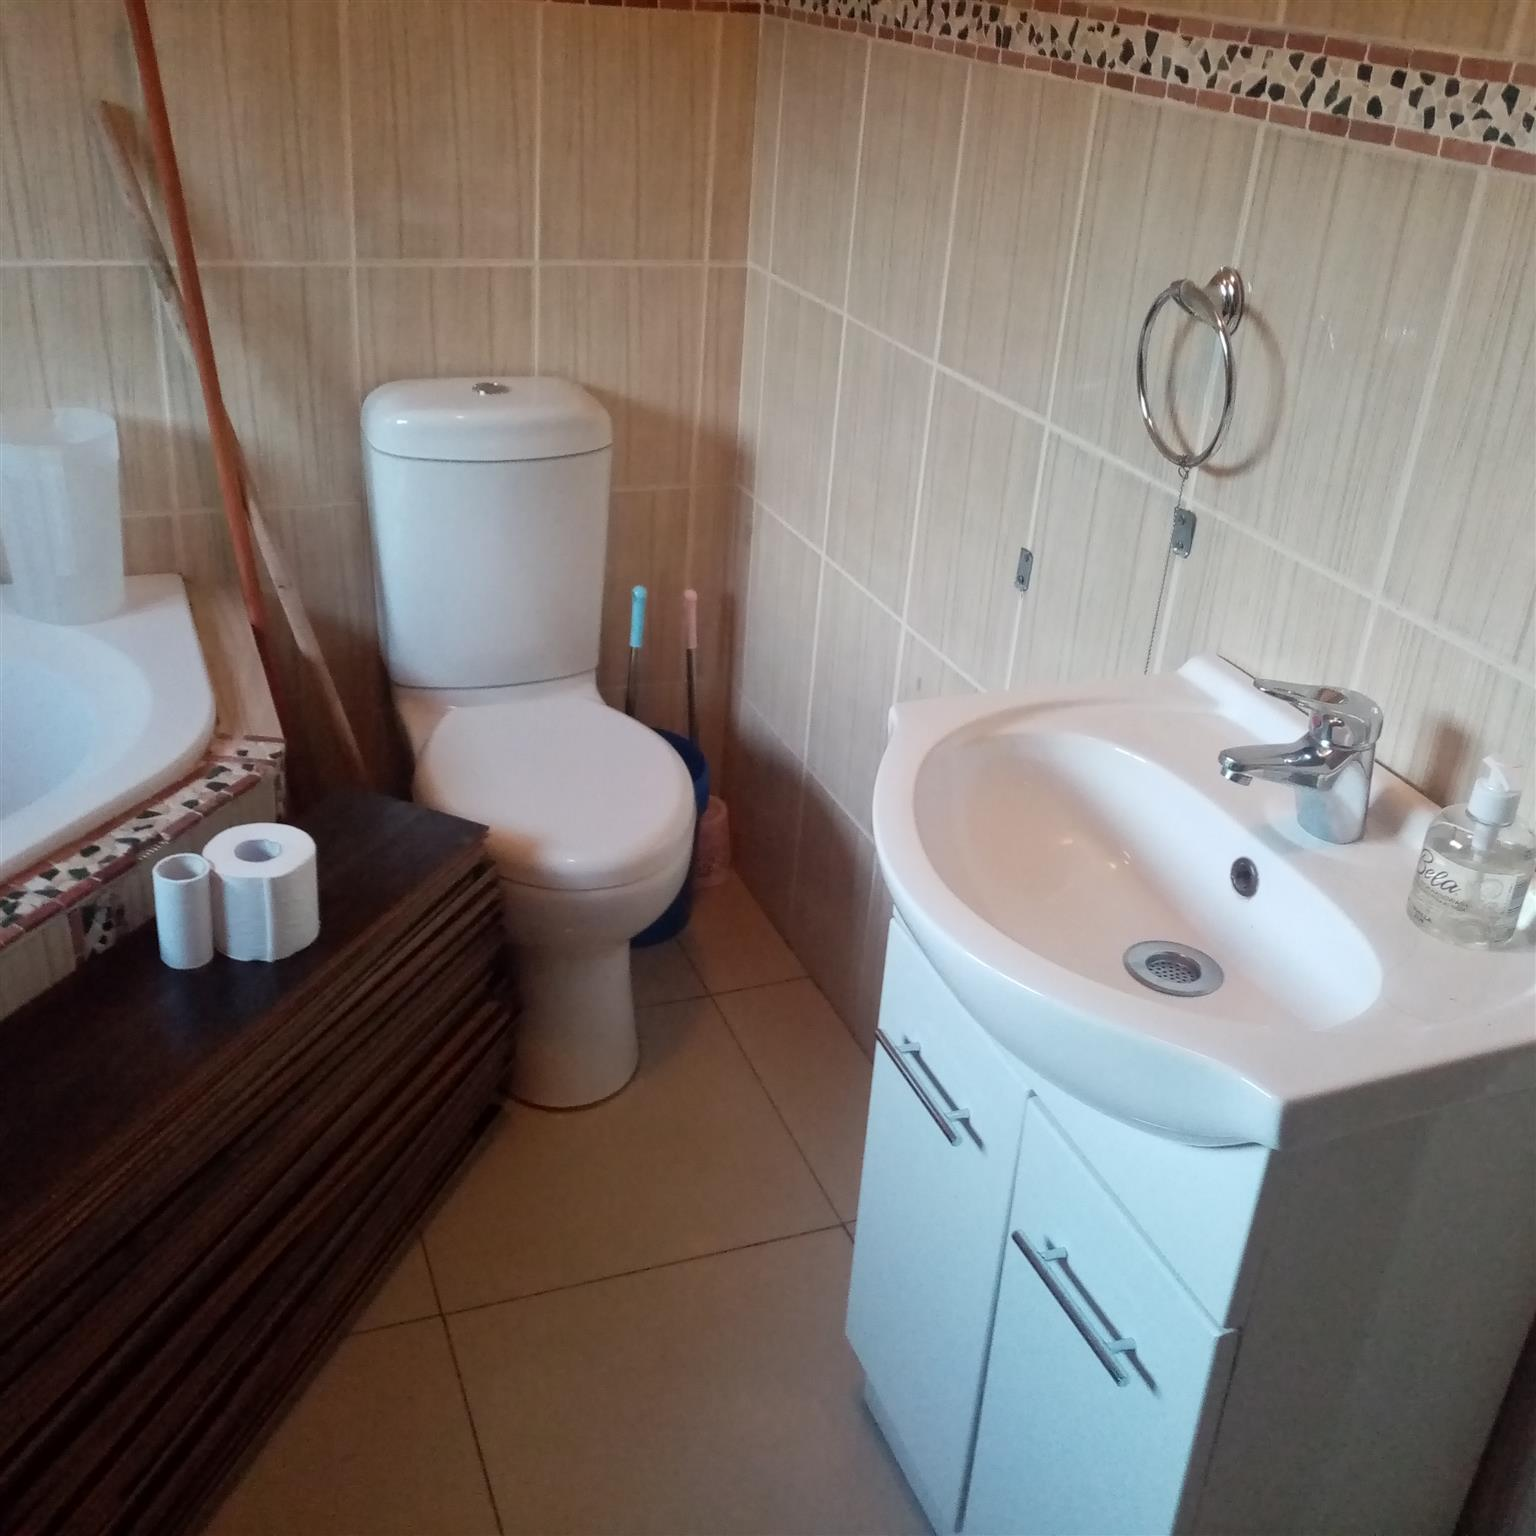 BACHELOR PAD TO LET IN PINETOWN